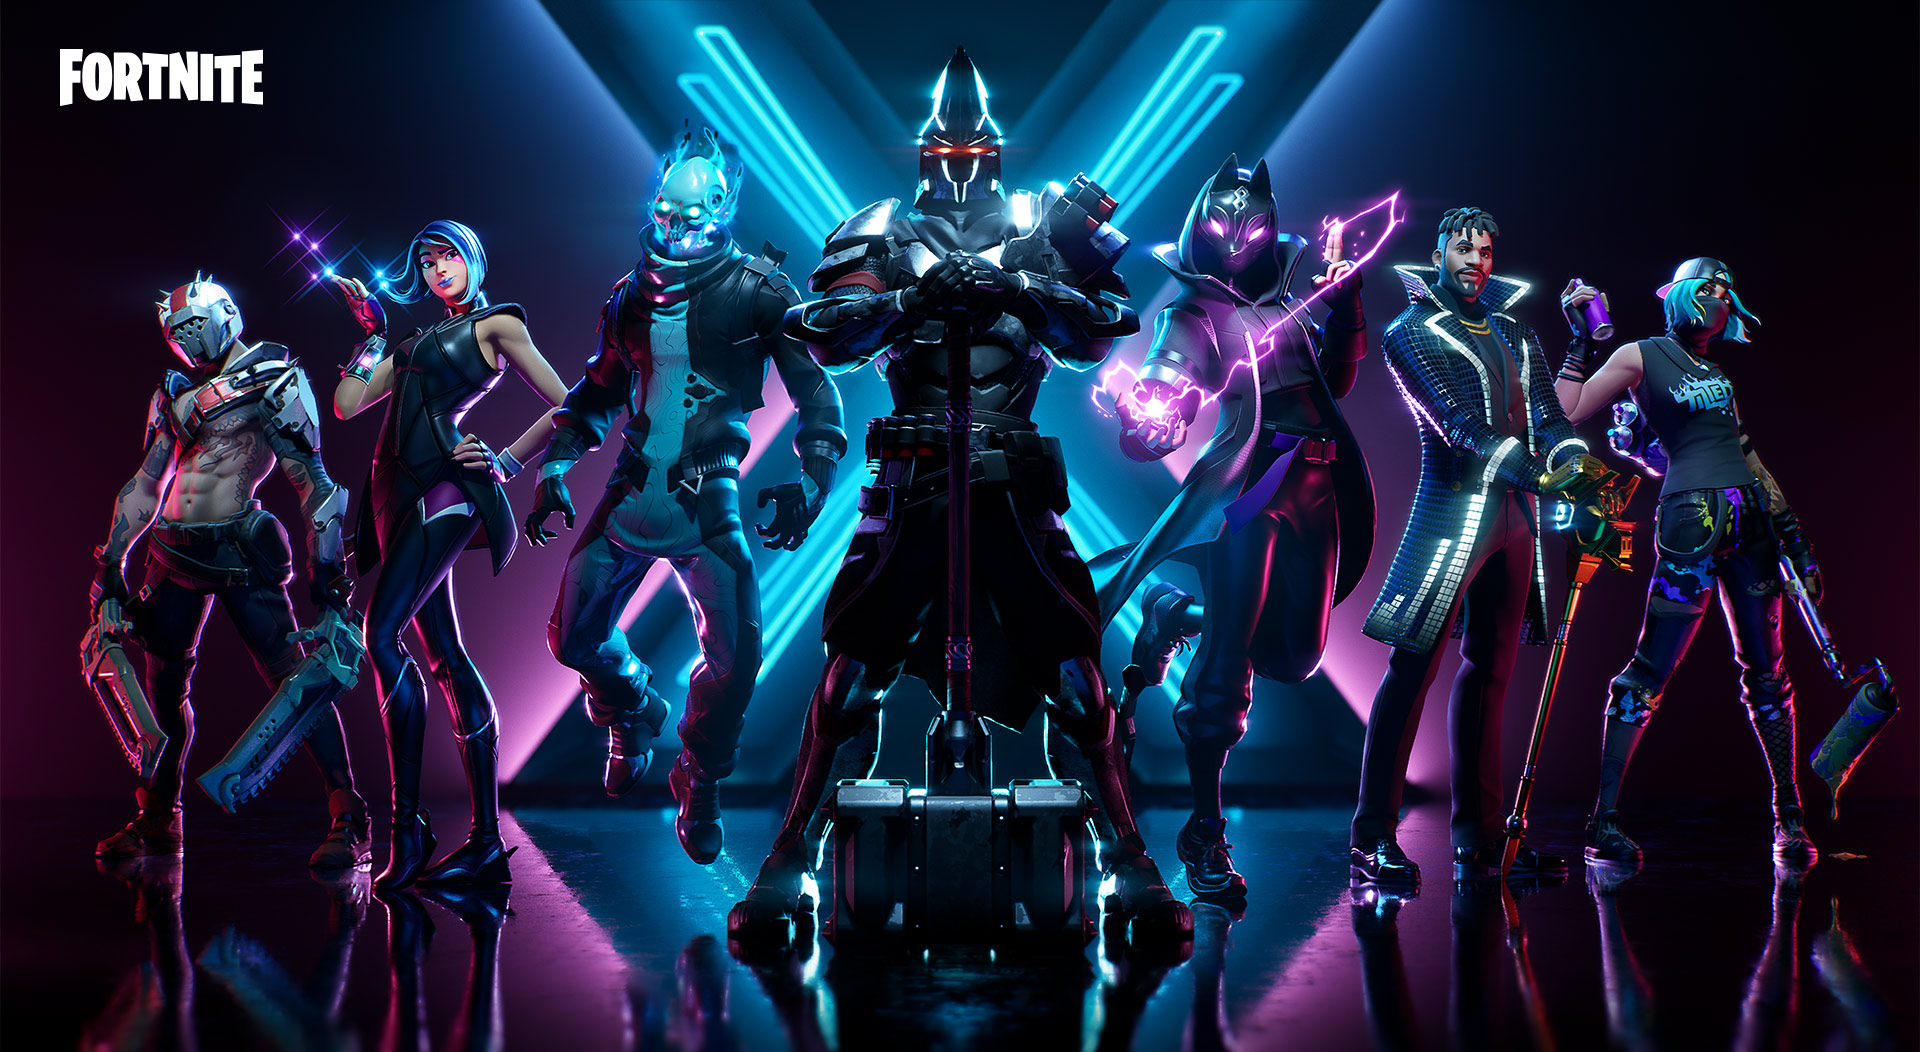 Front view of seven Fortnite characters posing